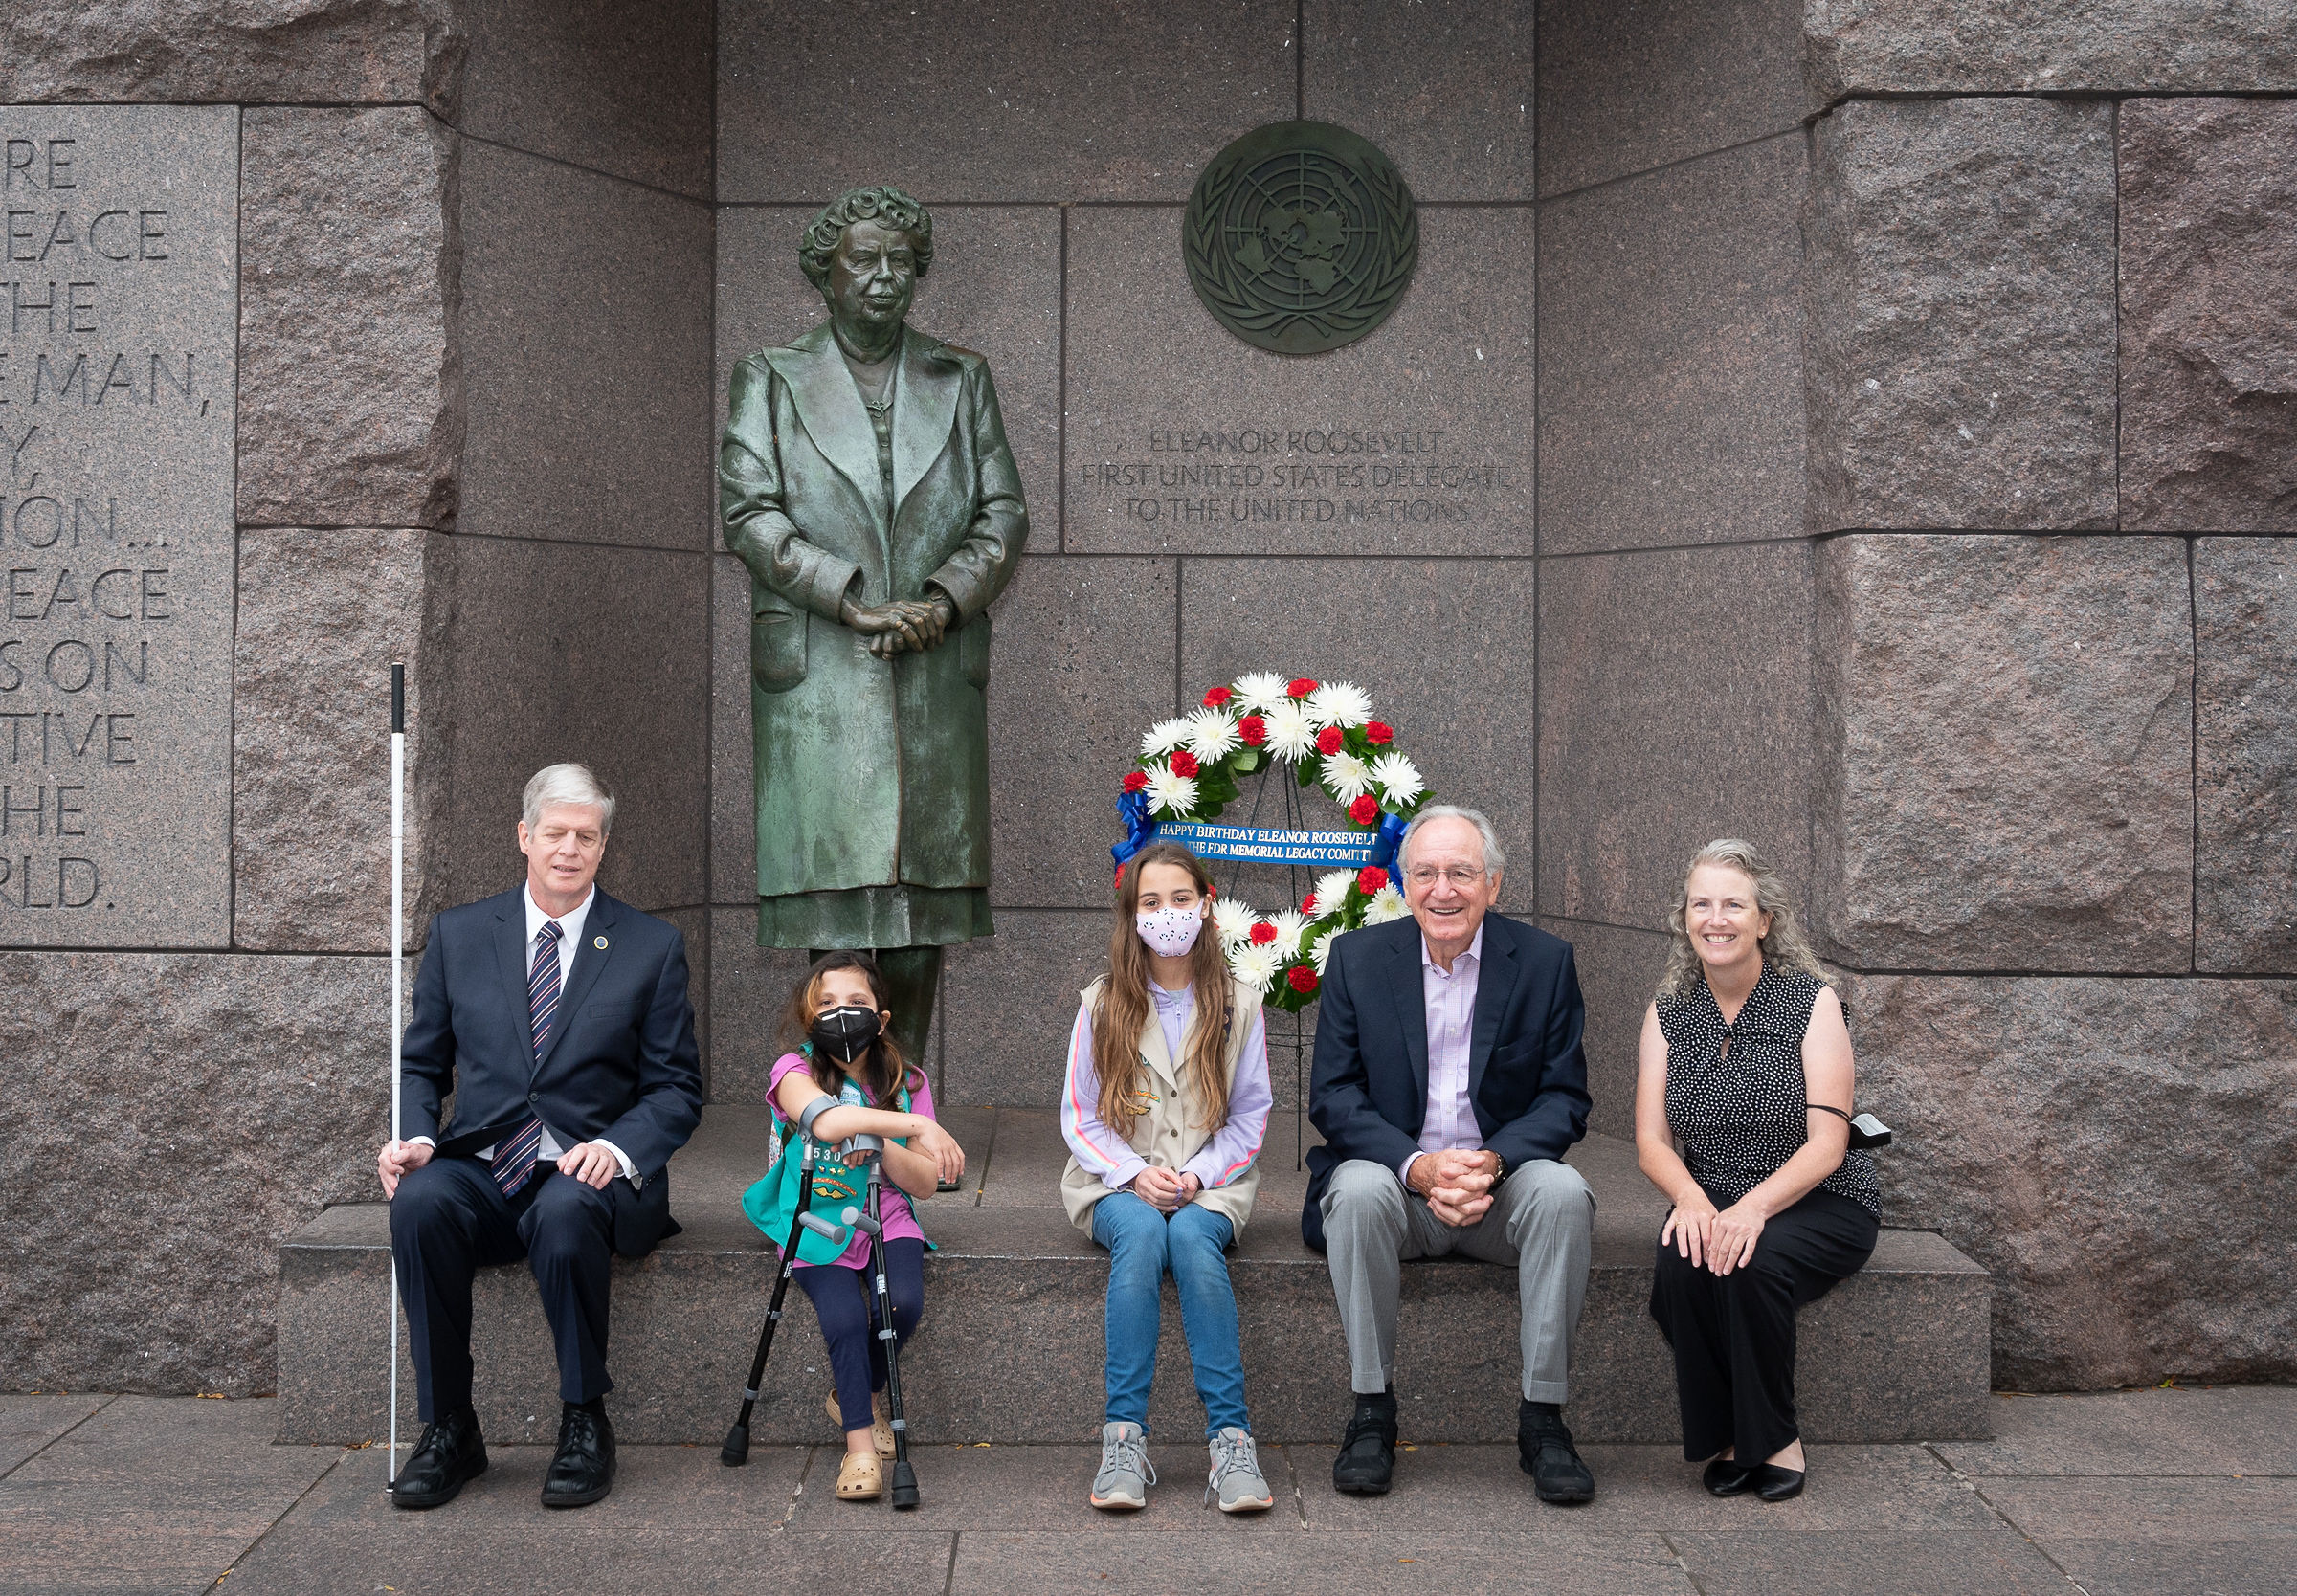 Pictured from left to right: Dr. Kirk Adams, President and CEO of the American Foundation for the Blind (AFB), Ari Paz Pasa, Girl Scout Troop 4720, Eva Lake, Girl Scout Troop 4720, U.S. Senator (Ret) Tom Harkin and Mary Dolan, Co-Founder and Executive Director of the FDR Memorial Legacy Committee commemorate Eleanor Roosevelt's human rights legacy and birthday at the first-ever wreath-laying in her honor at the FDR Memorial in Washington, D.C.